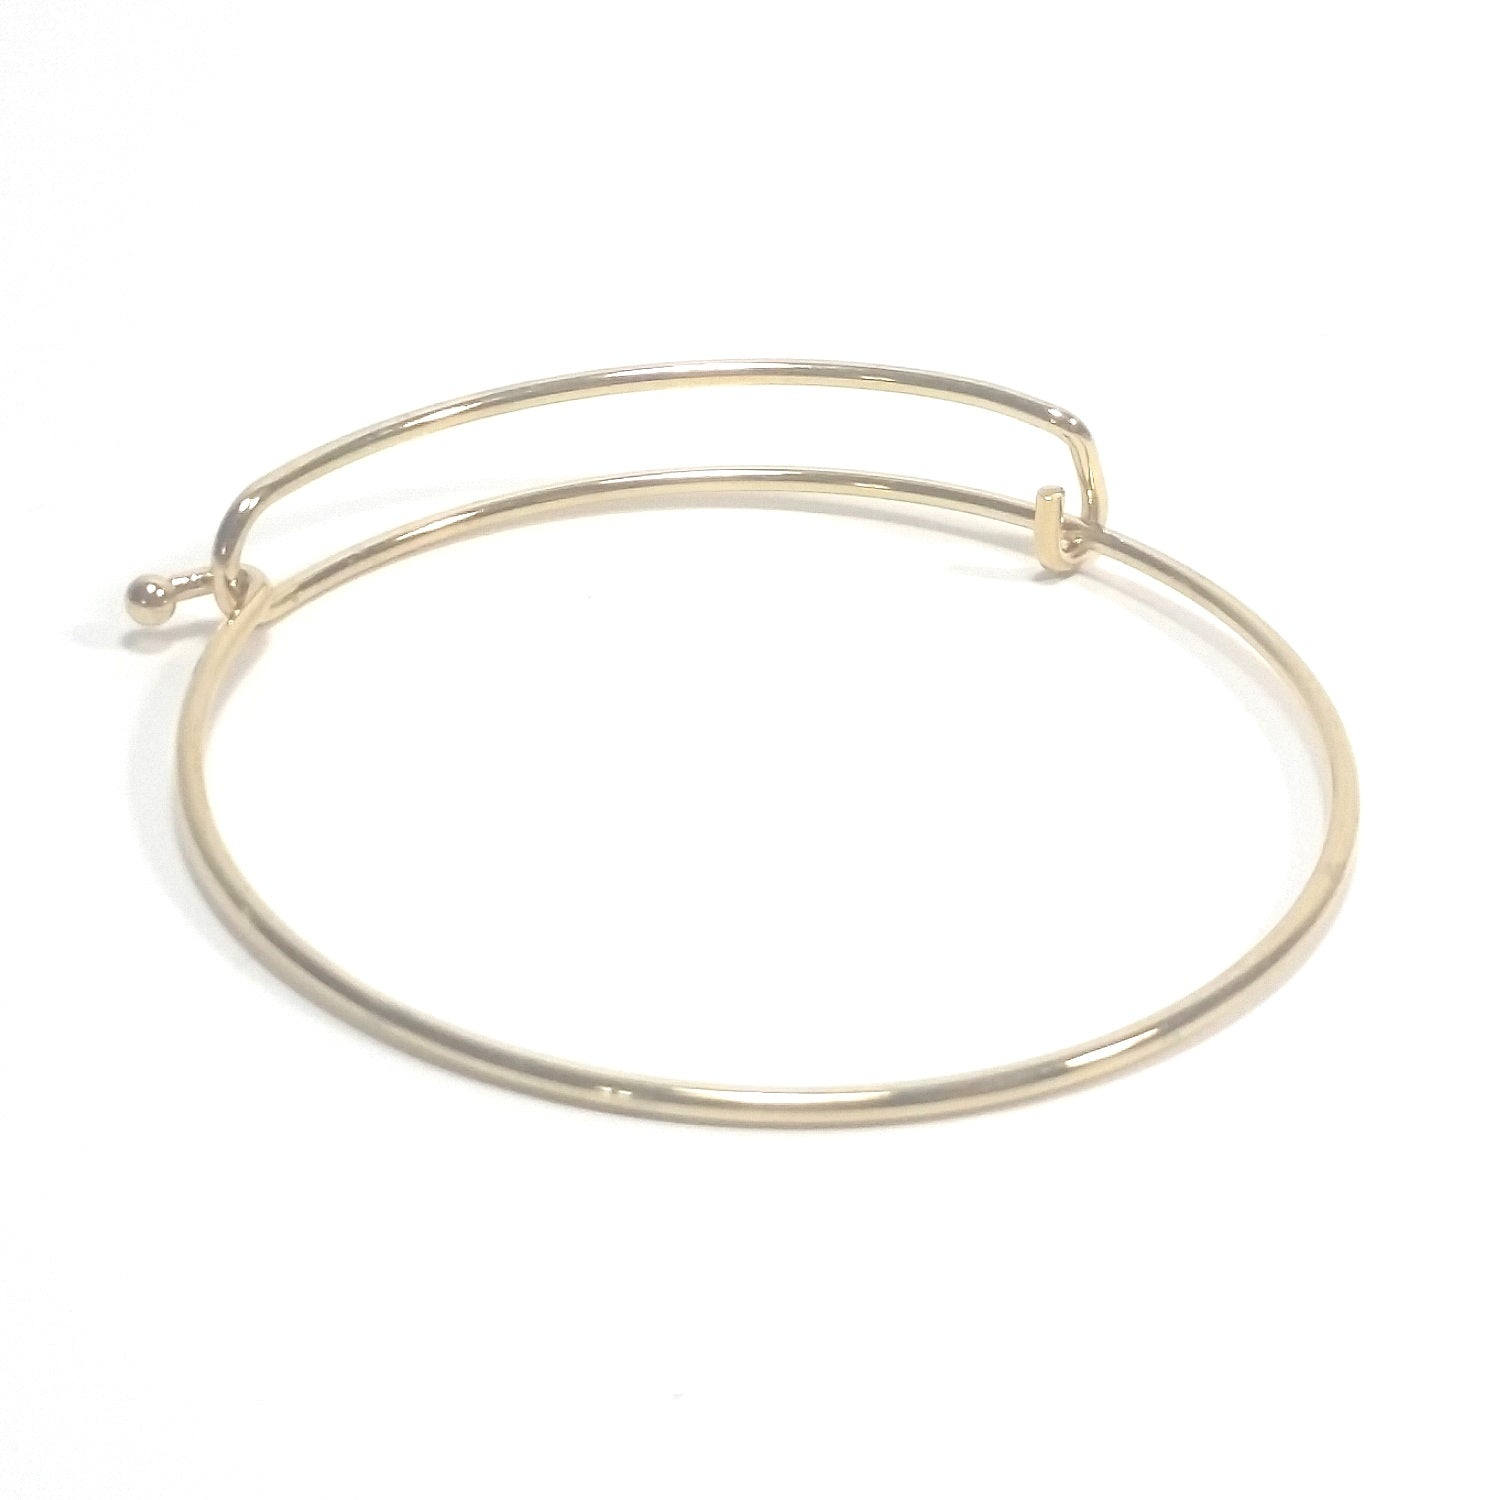 man thin filled jewelry il gold men adjustable expandable zoom wire woman bangles minimalist circles listing with bracelet ca manwoman bangle fullxfull